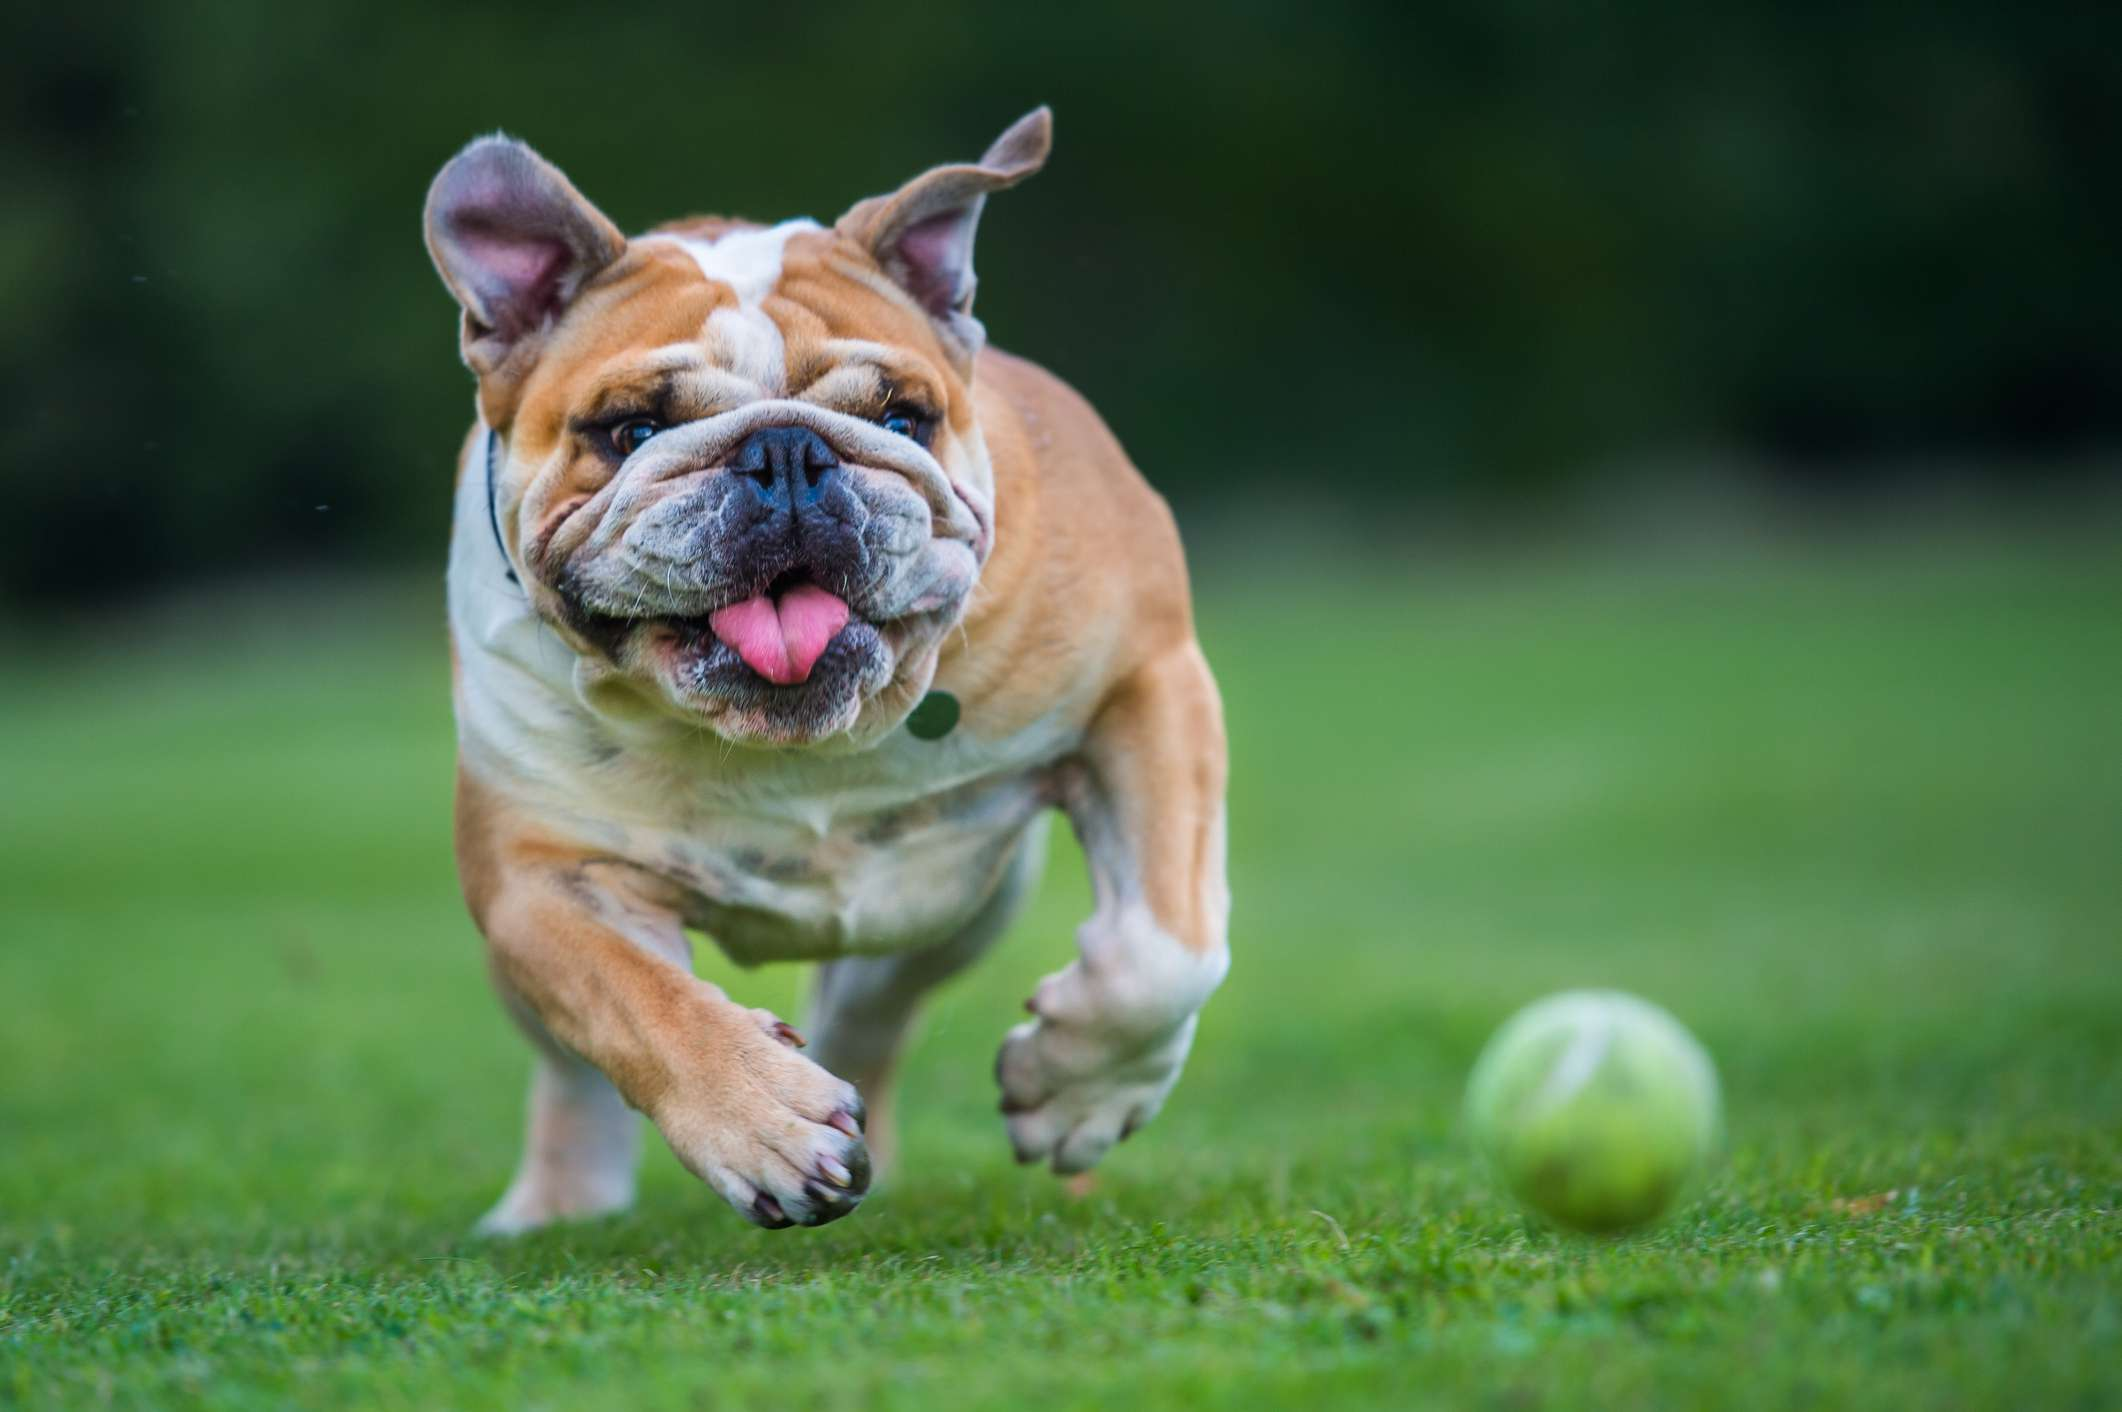 Bulldog running for a ball on grass